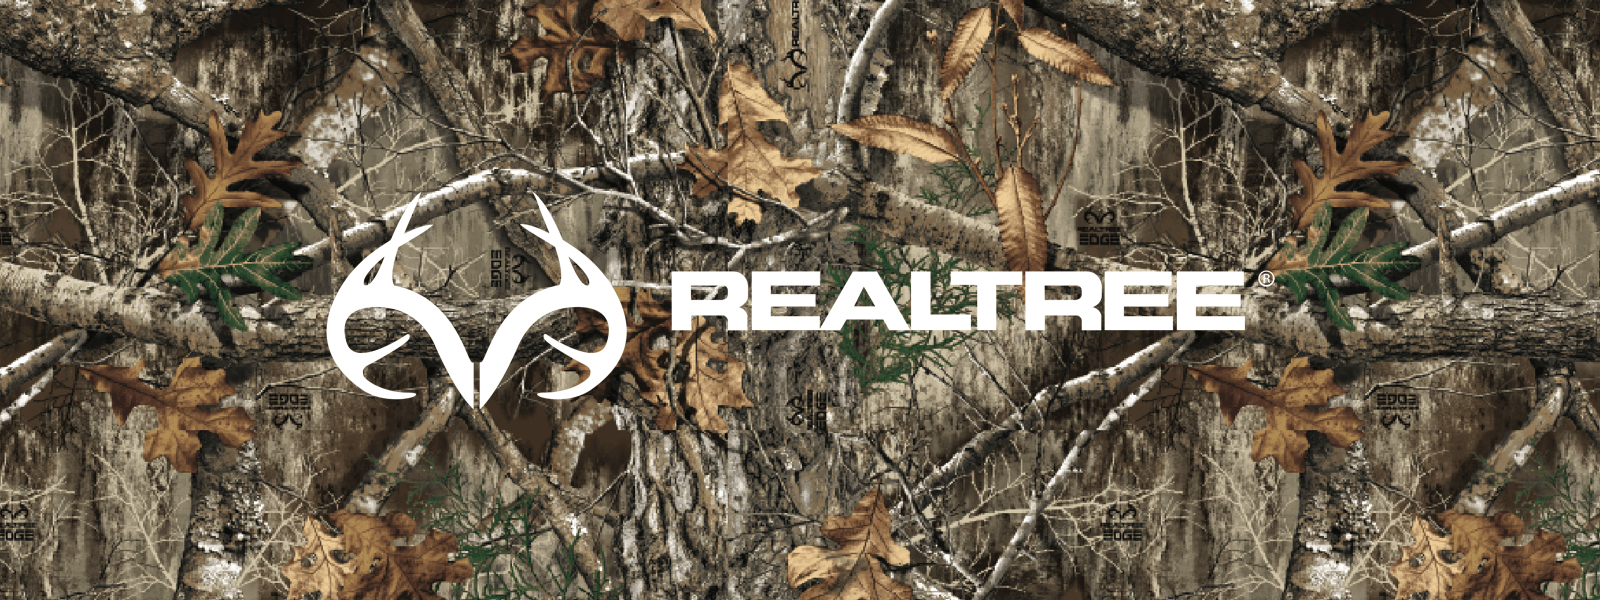 Realtree Fire Starters and Outdoor Survival Line - Best Gear for Outdoorsman Going Hunting Buschcraft - For Outdoor and Survival - The Iconic Hunting Camouflage